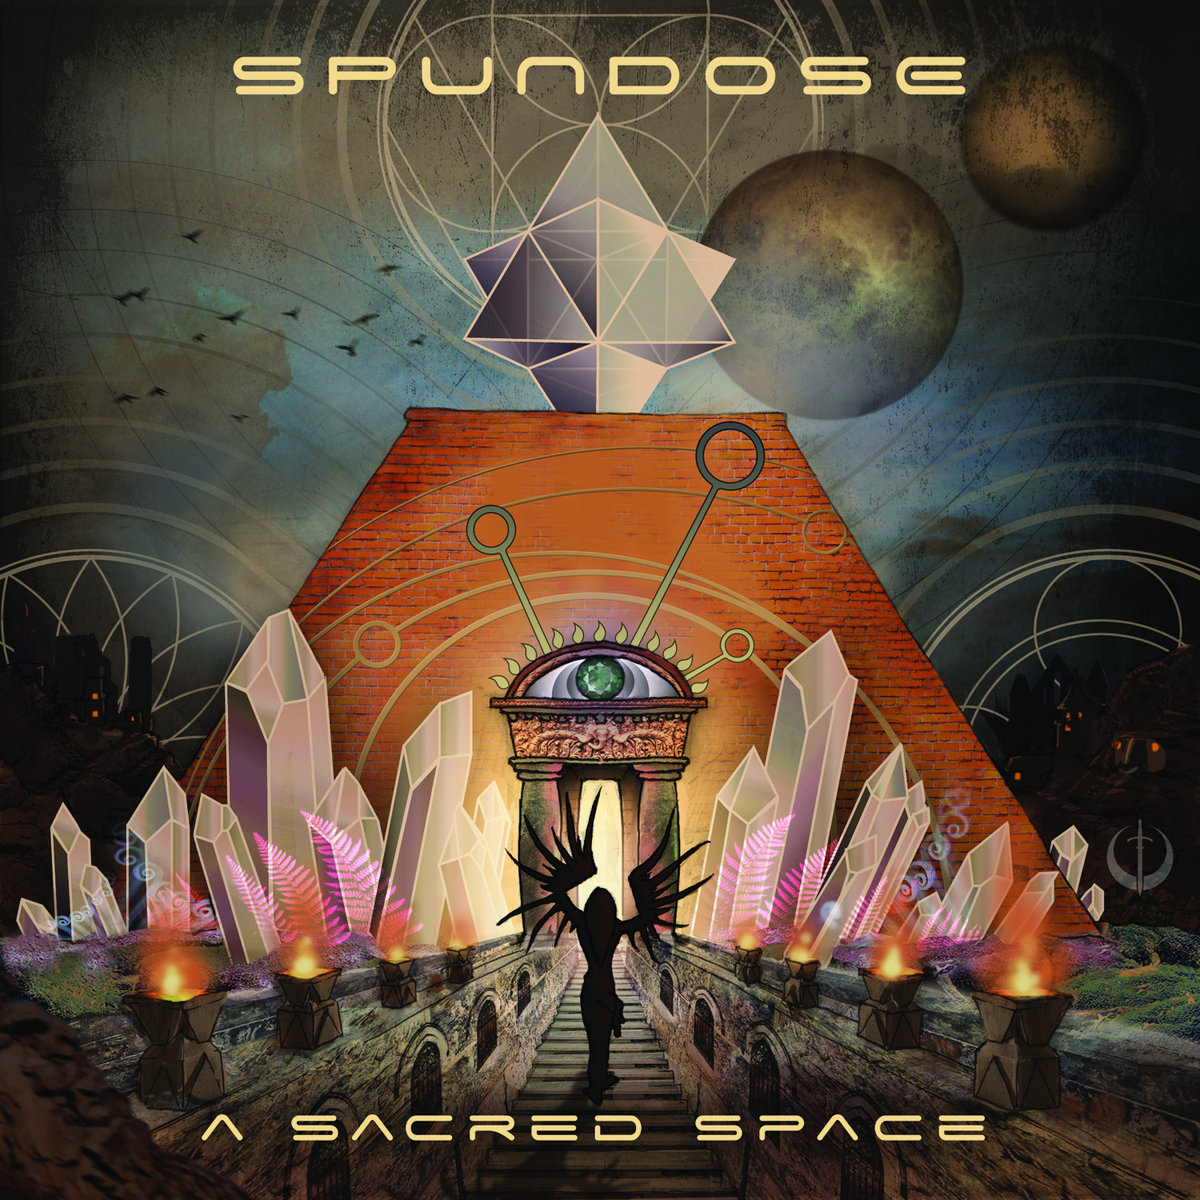 Spundose - Ultradian @ 'A Sacred Space' album (bass, electronic)